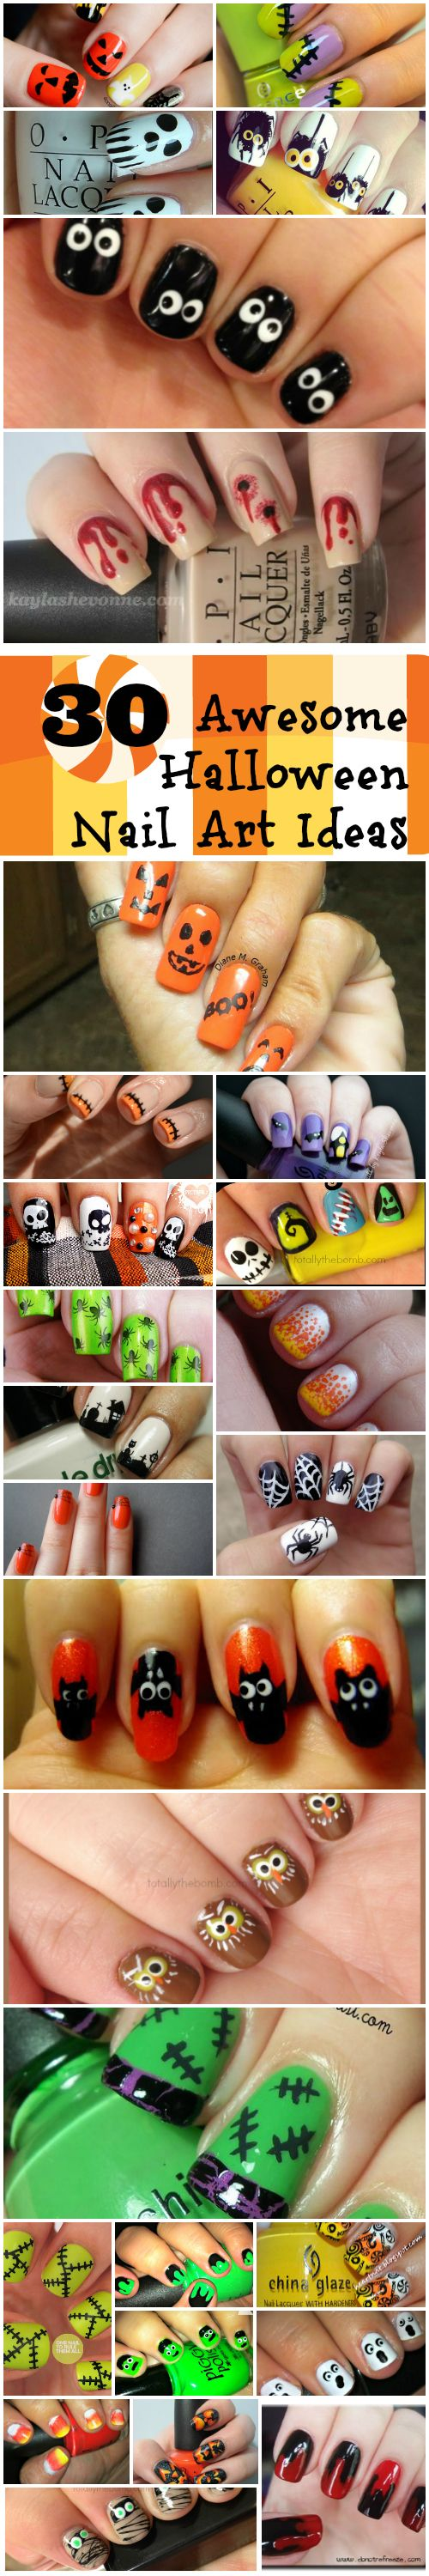 awesome halloween nail art ideas th nail wraps and holidays